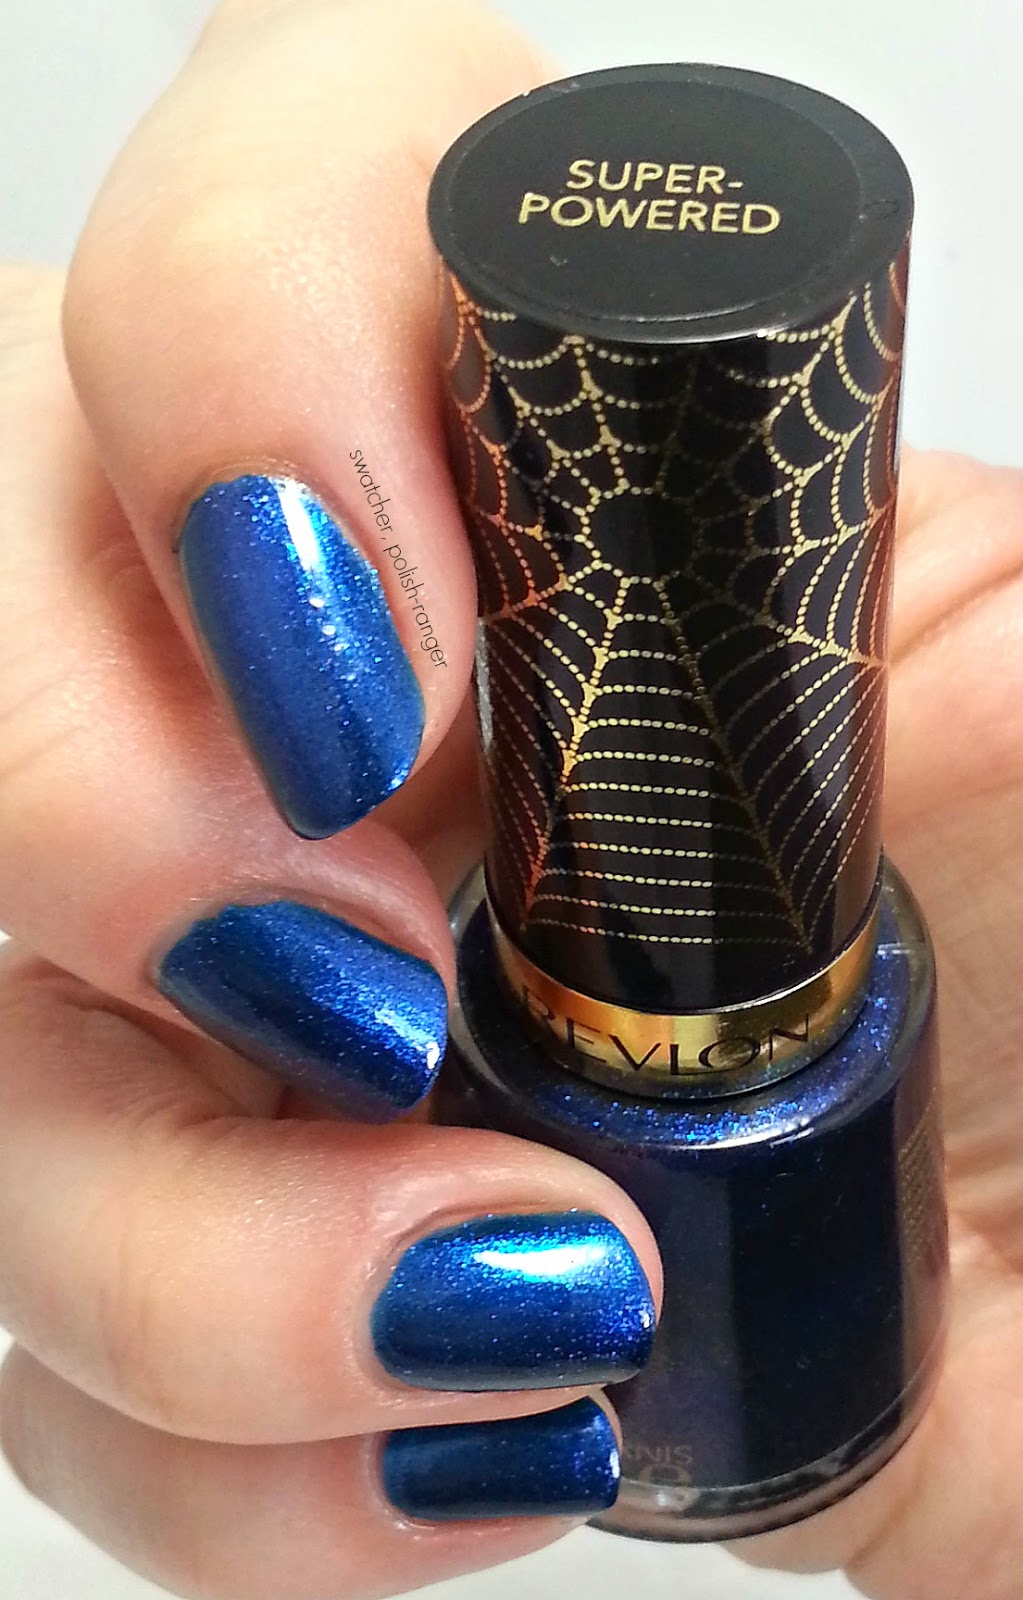 Revlon Electric Chrome Collection LE Super-Powered swatch